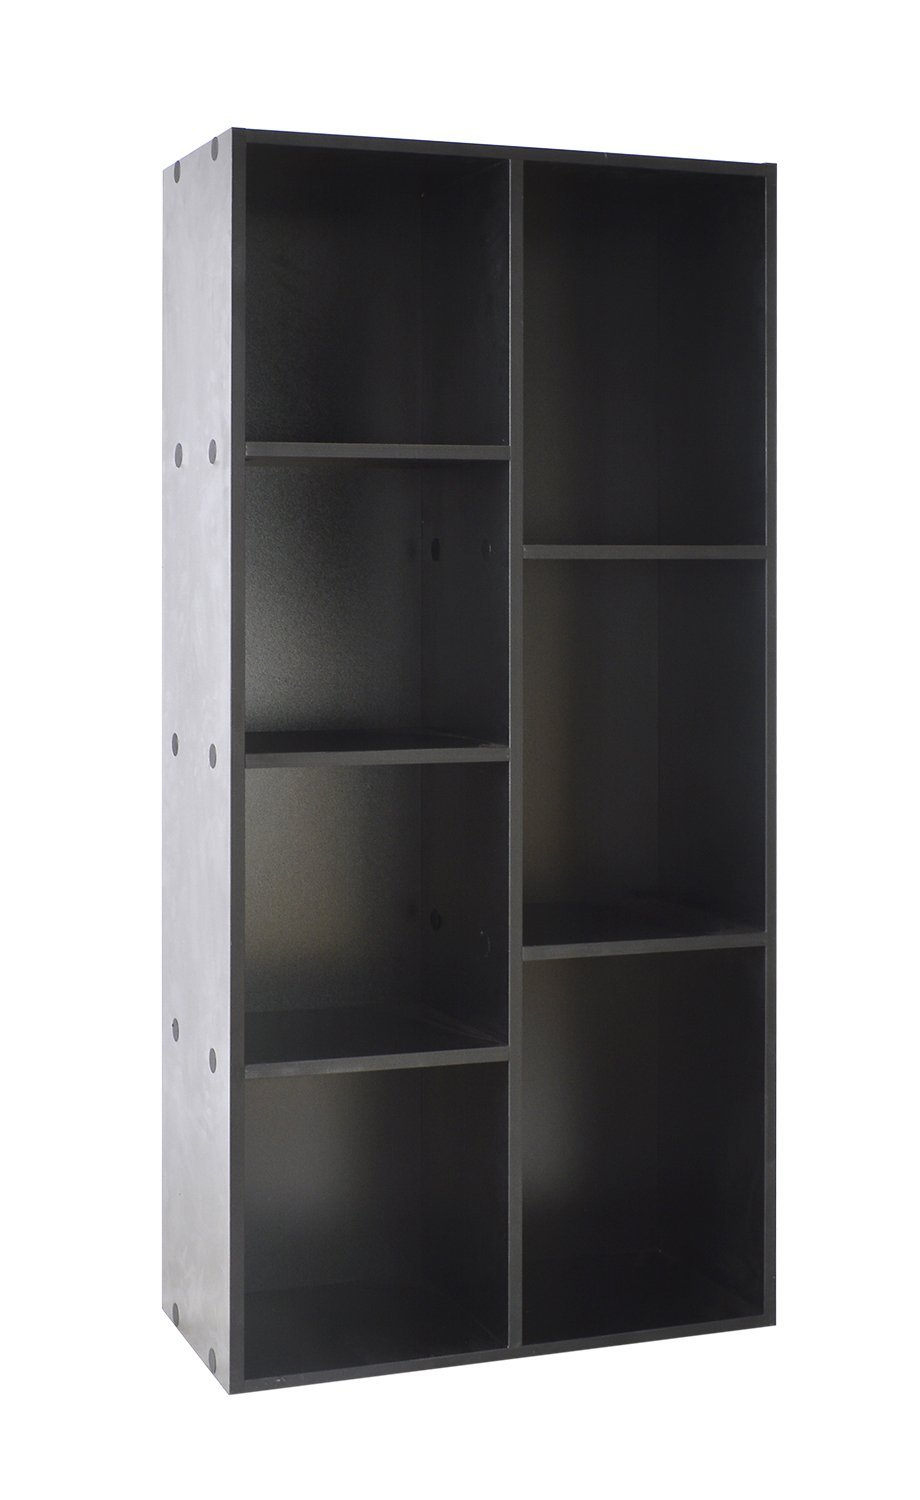 Bestwoohome Wood 7 Cubbies Storage Cabinet Organizer Bookcase (Black)